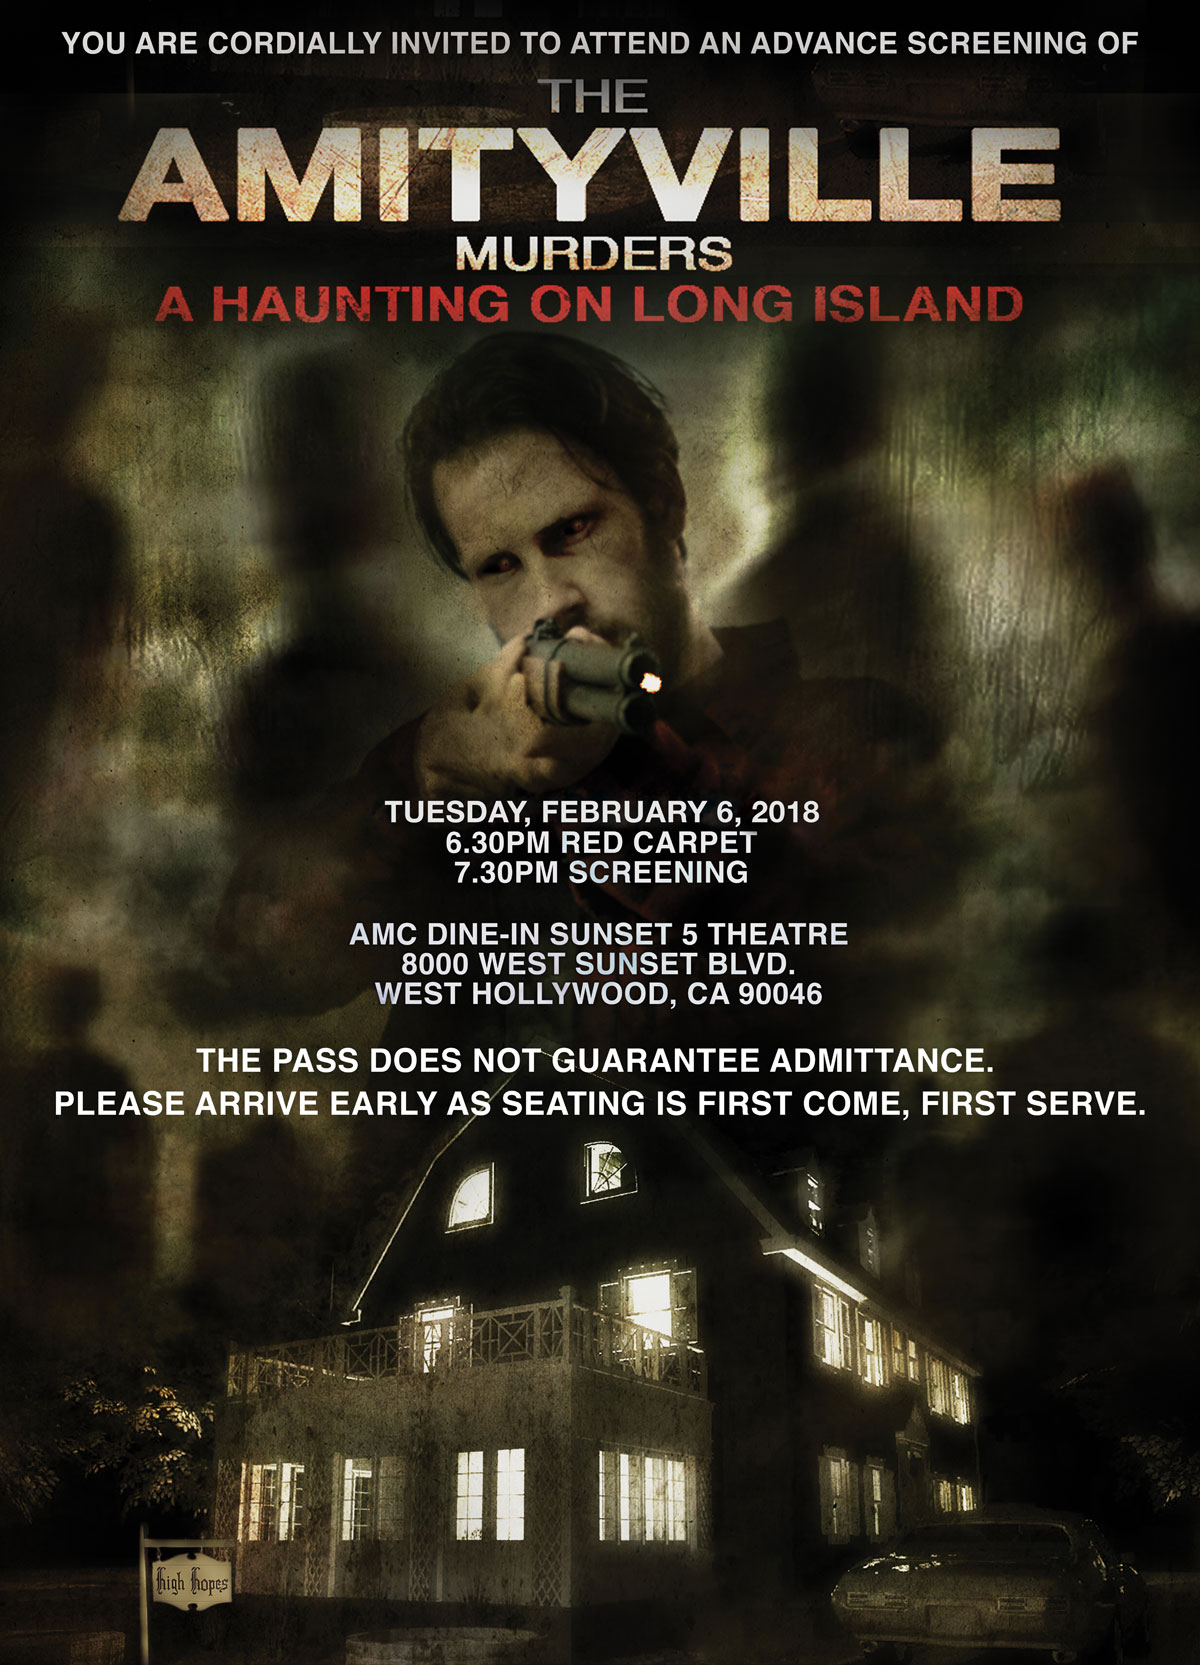 The Haunting On Long Island The Amityville Murders